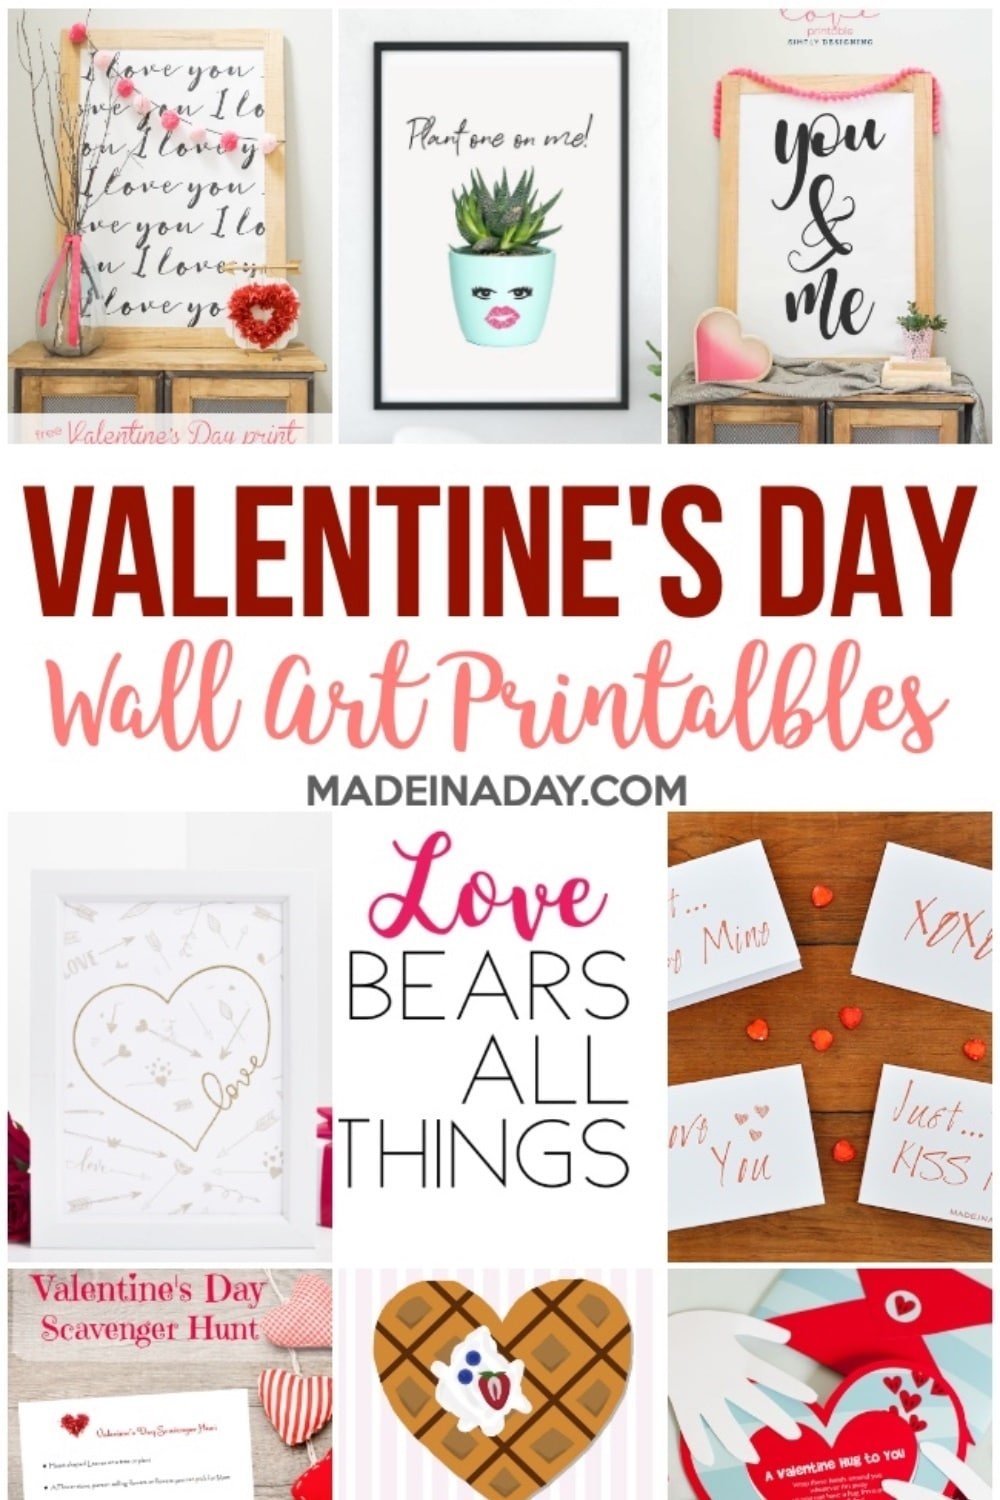 Valentines Day Wall Art Printables & More!